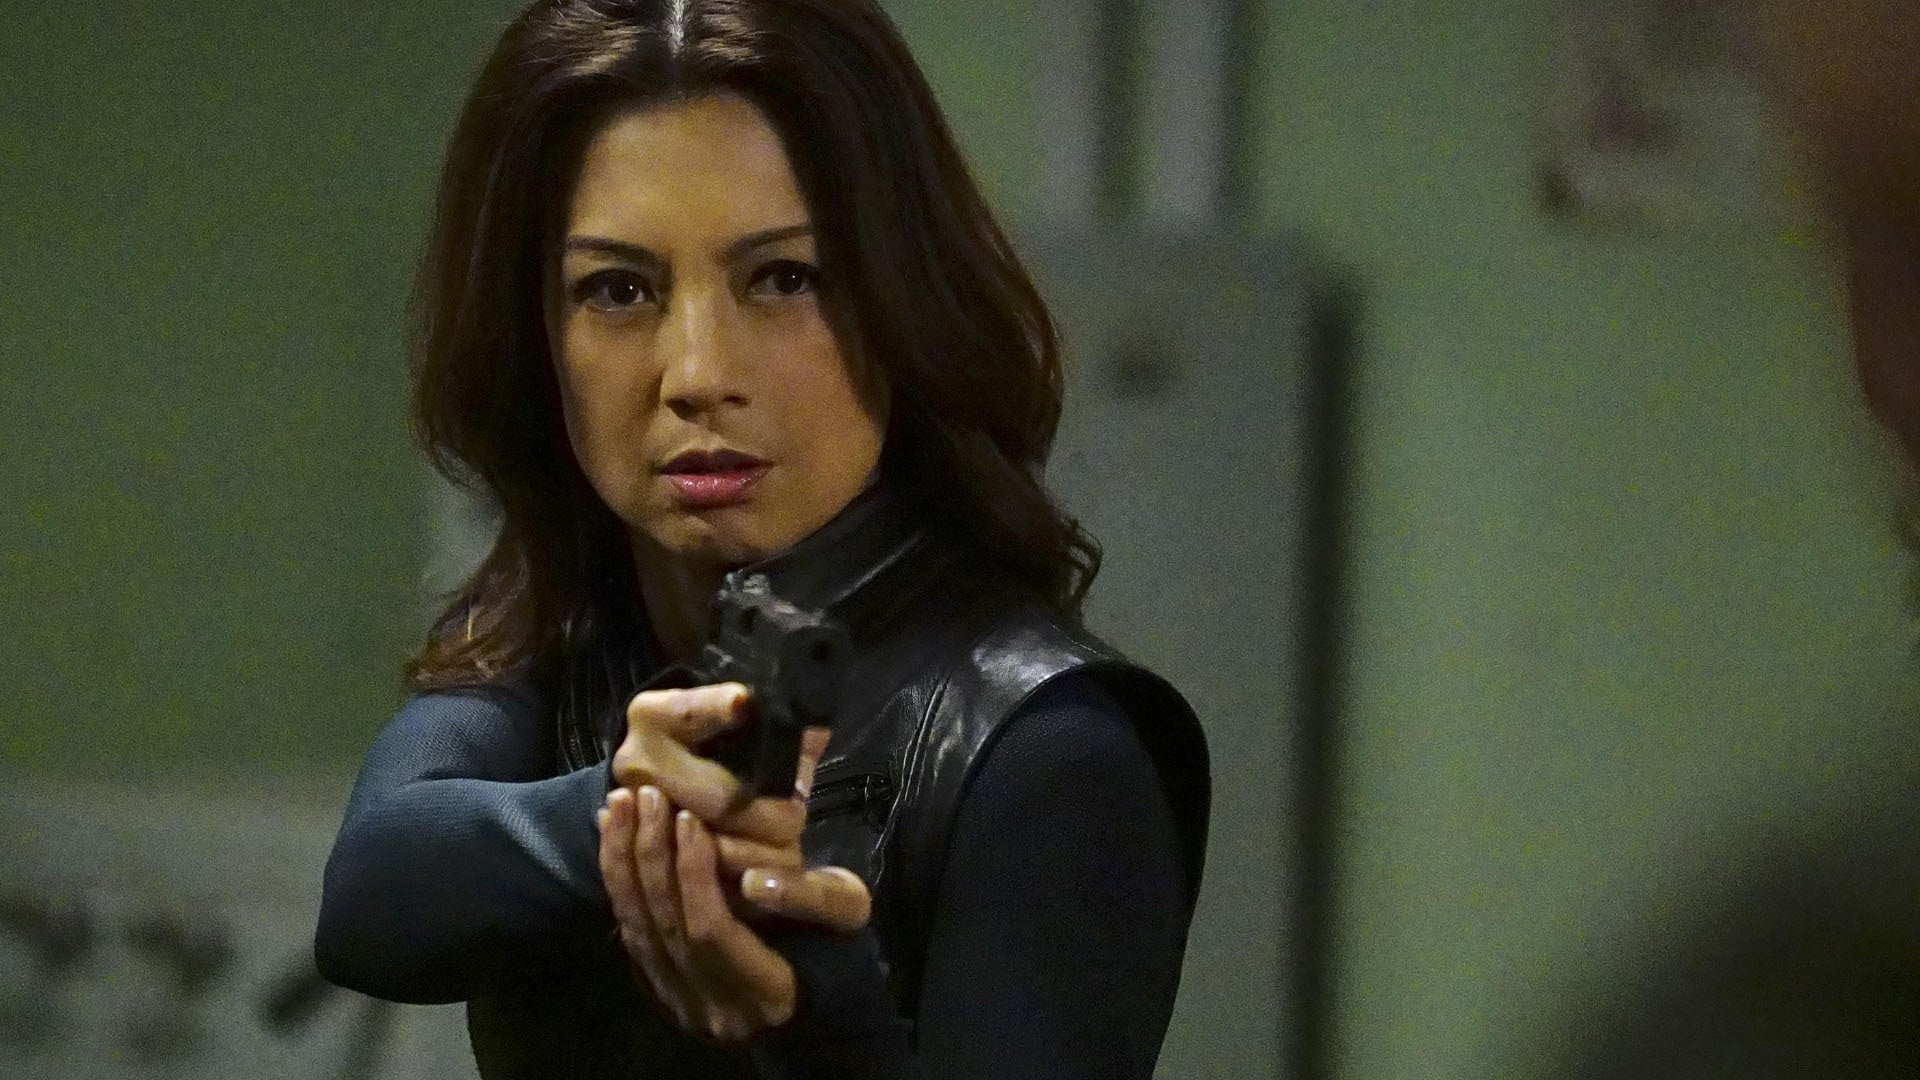 Marvel's Agents of S.H.I.E.L.D. - Season 3 Episode 22 : Ascension